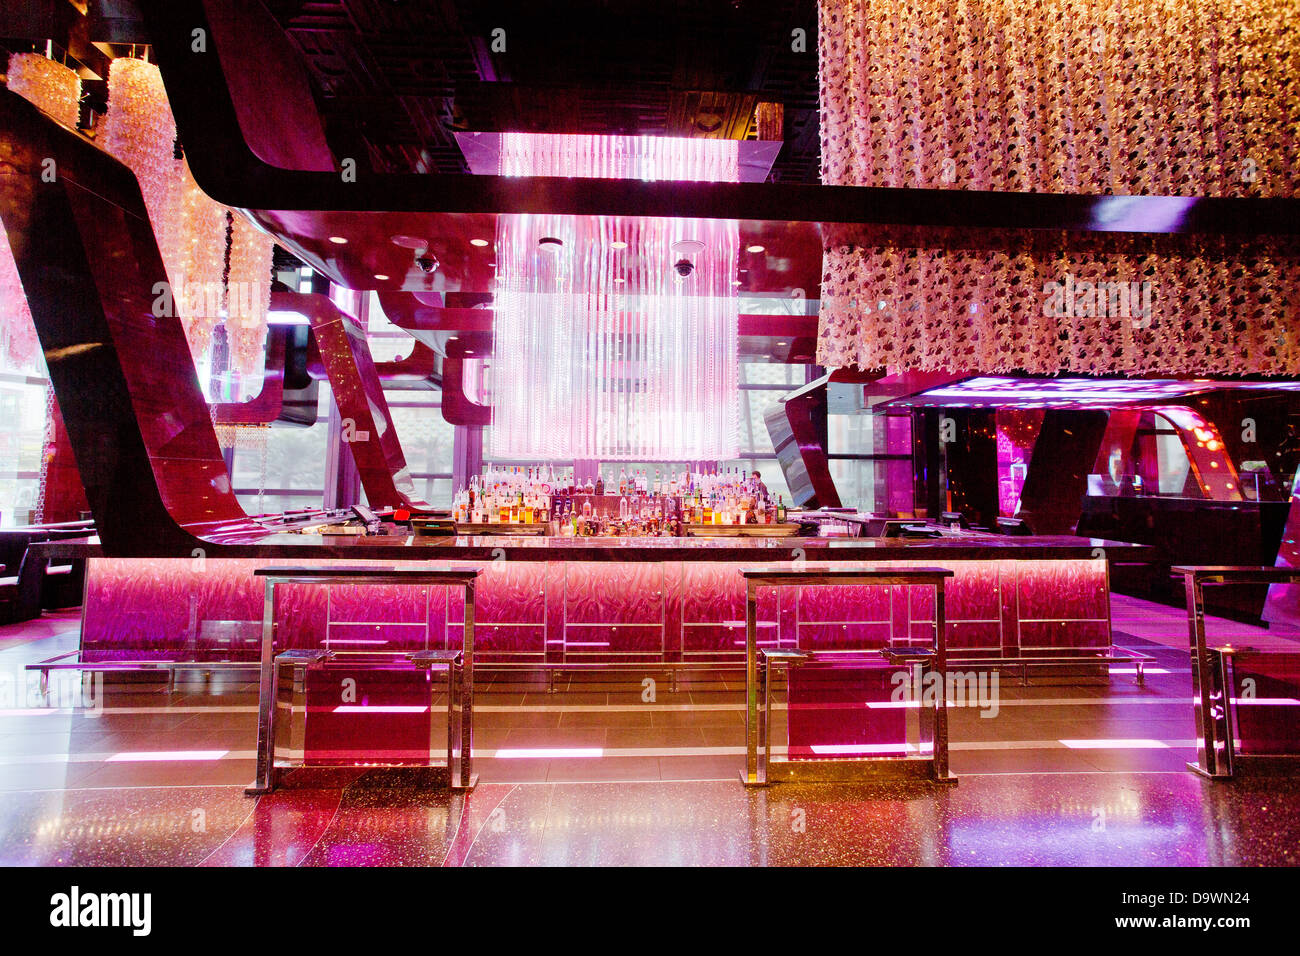 cosmopolitan of las vegas luxury resort casino and hotel interior of the lounge and bar